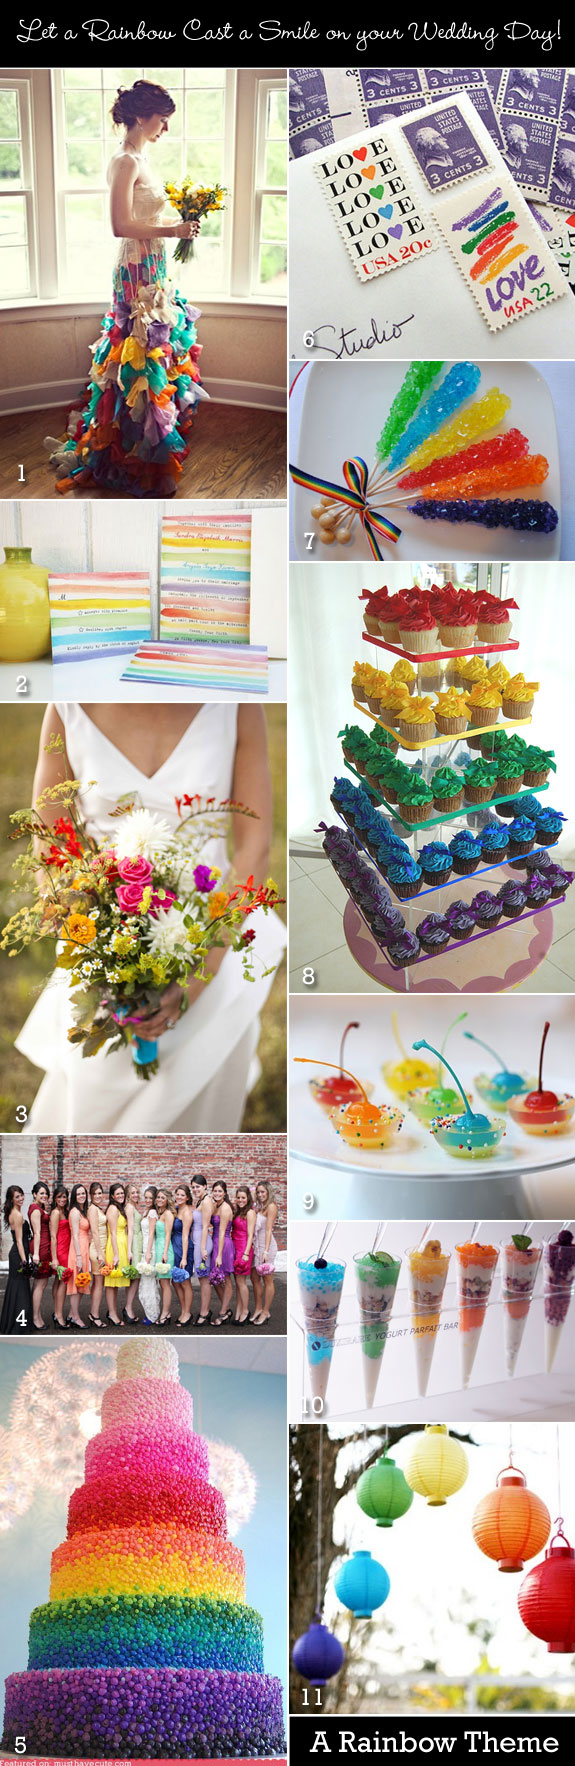 A rainbow-themed wedding with multicolors